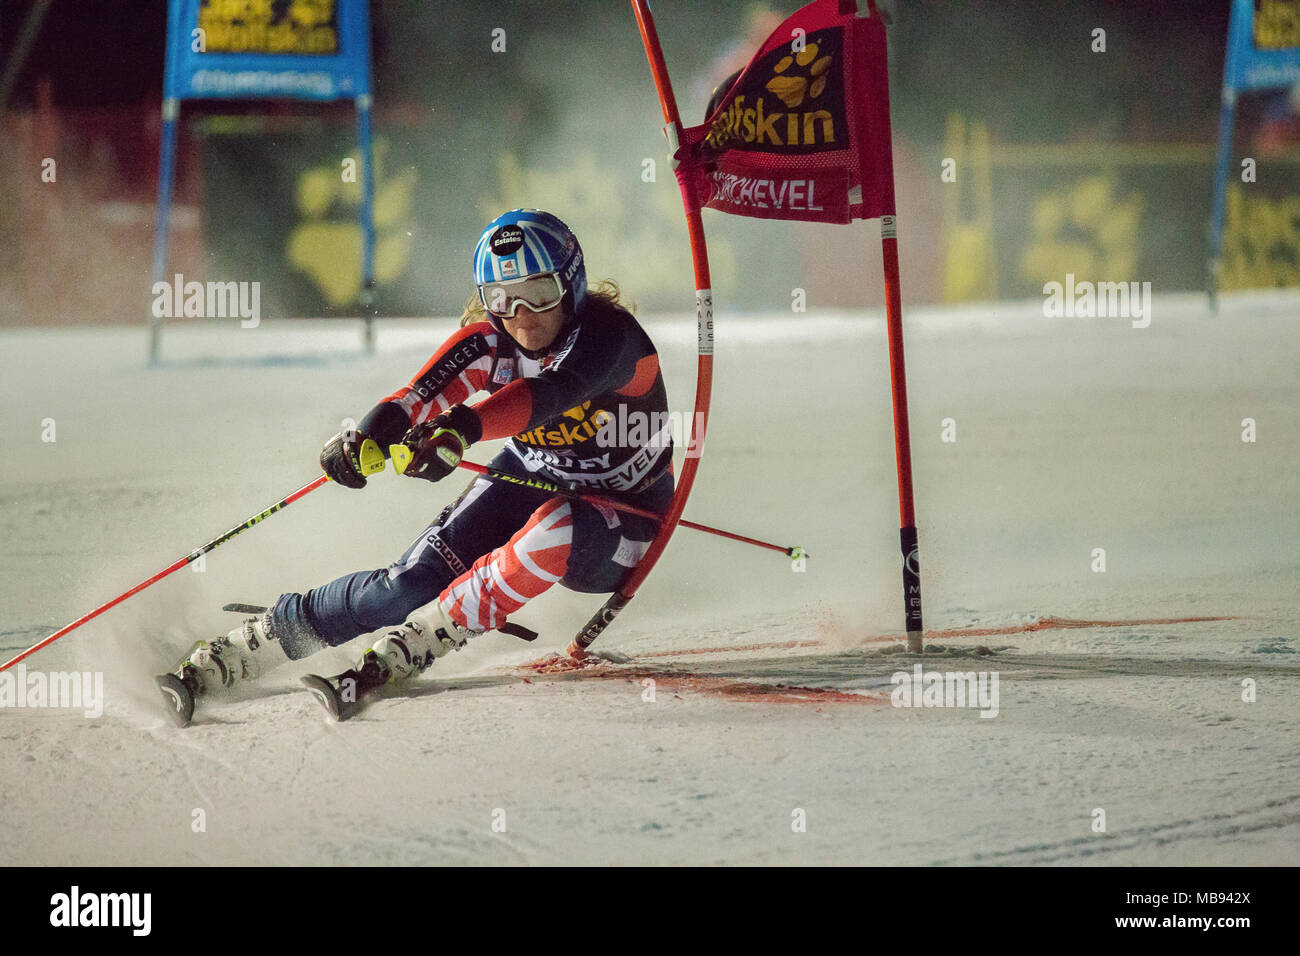 20 December 2017 Alex Tilley of Scotland Great Britain Competing in the Parallel Slalom of Courchevel Ladies Ski World Cup 2017 - Stock Image